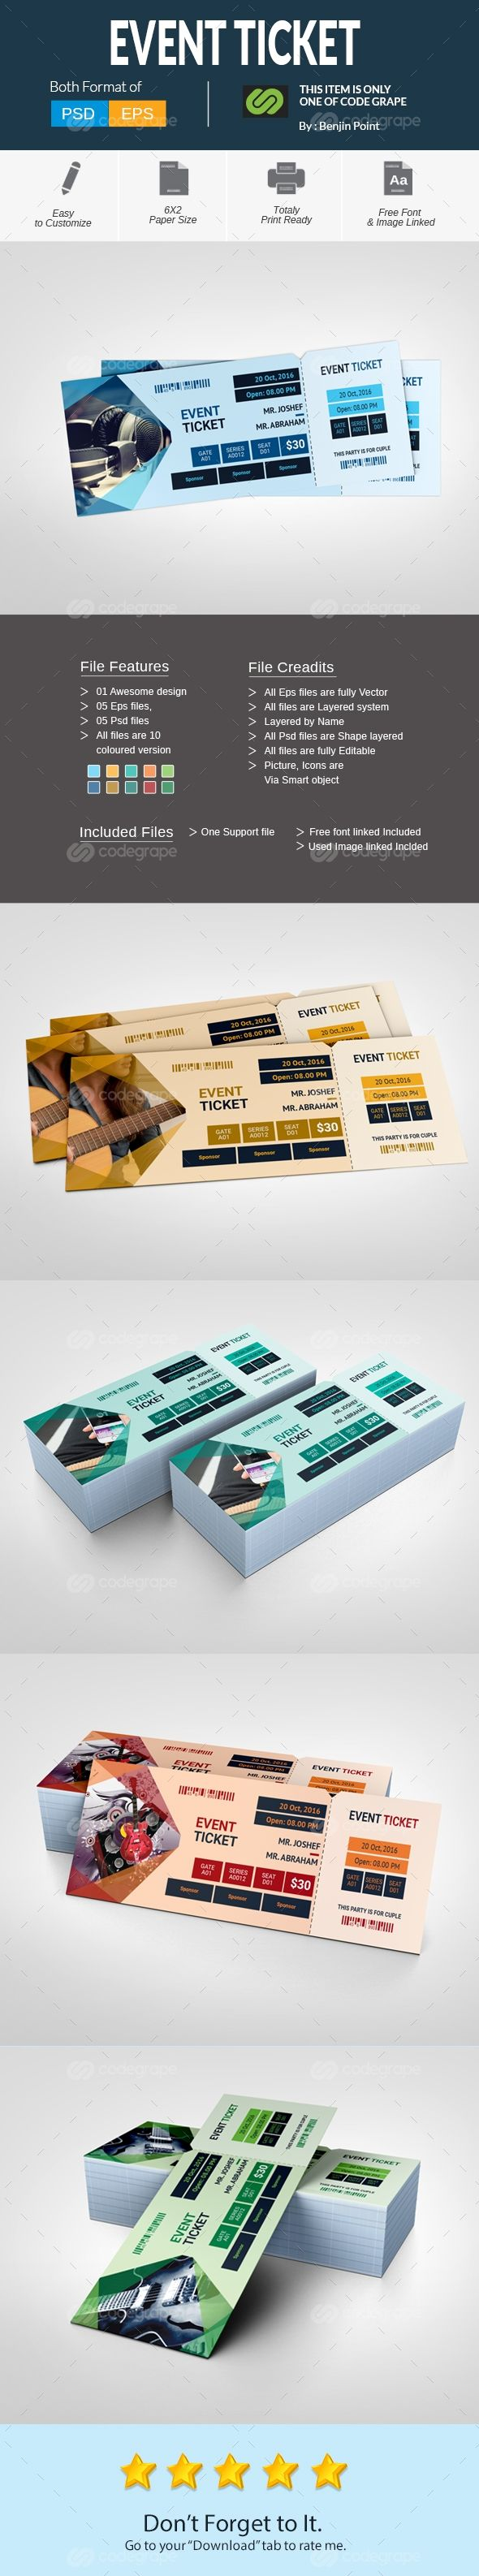 business event invitation templates%0A Event Ticket on  codegrape  More Info  https   www codegrape